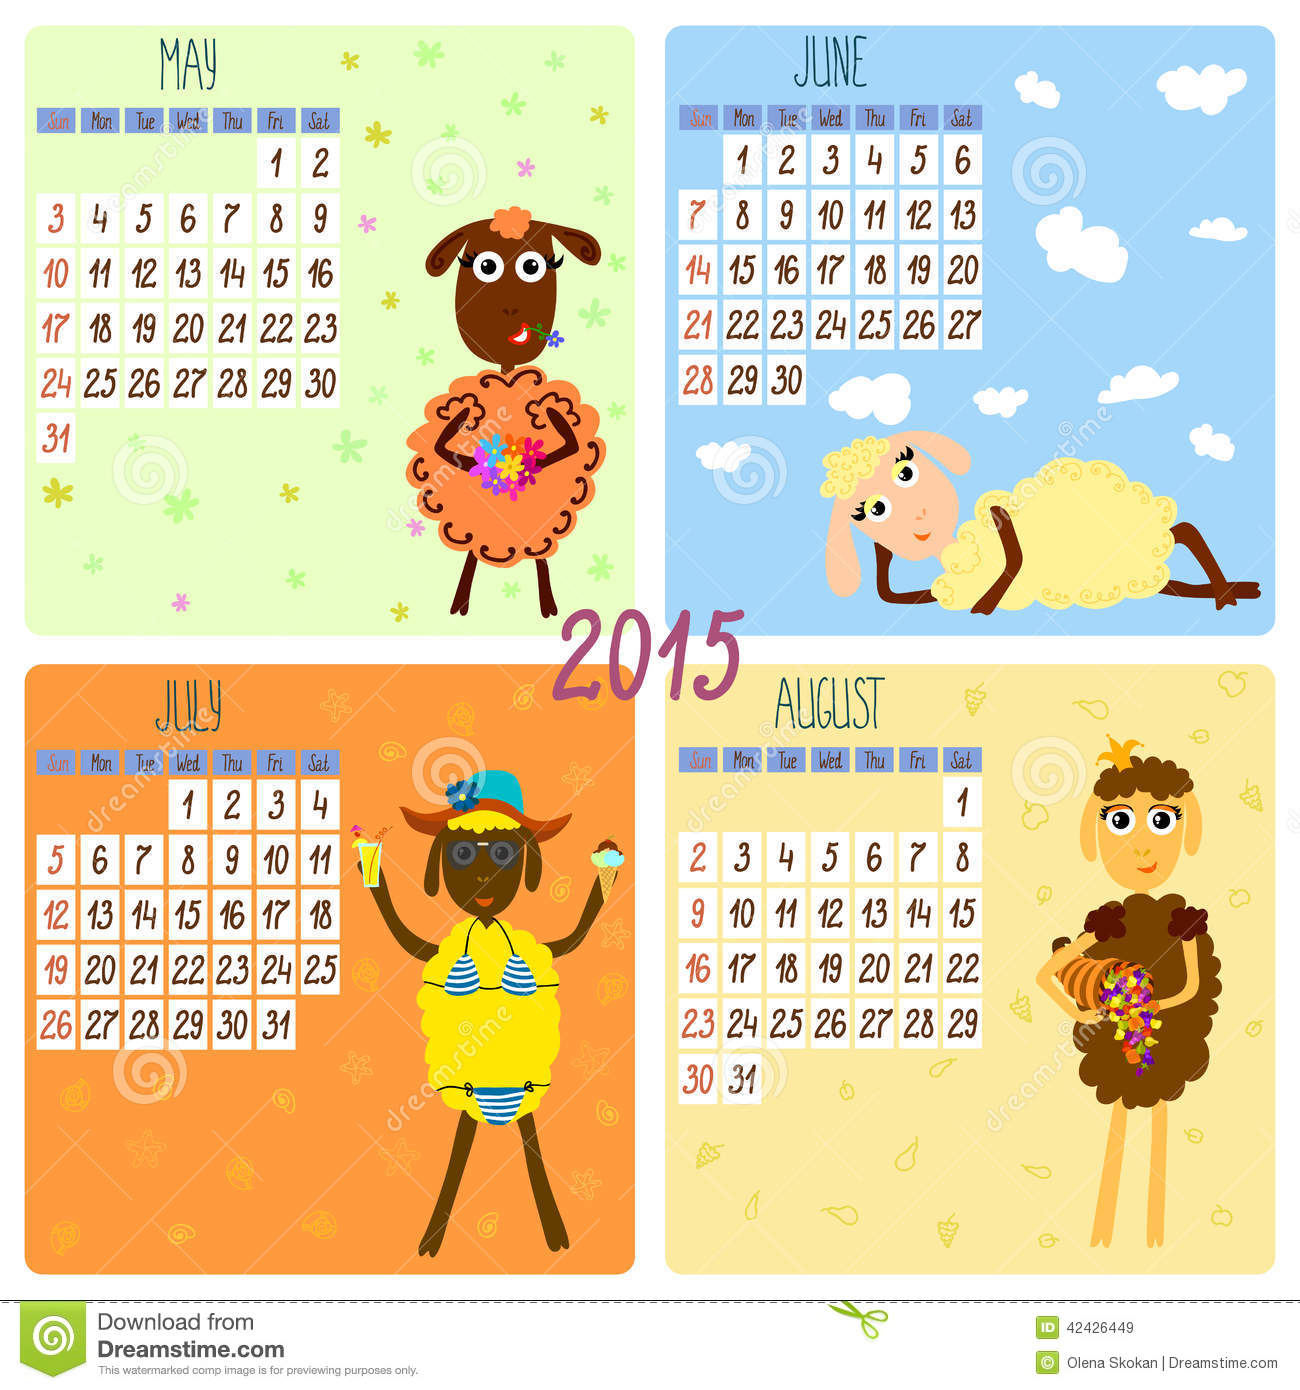 2015 Calendar With Funny Sheep. Summer Stock Vector - Image: 42426449